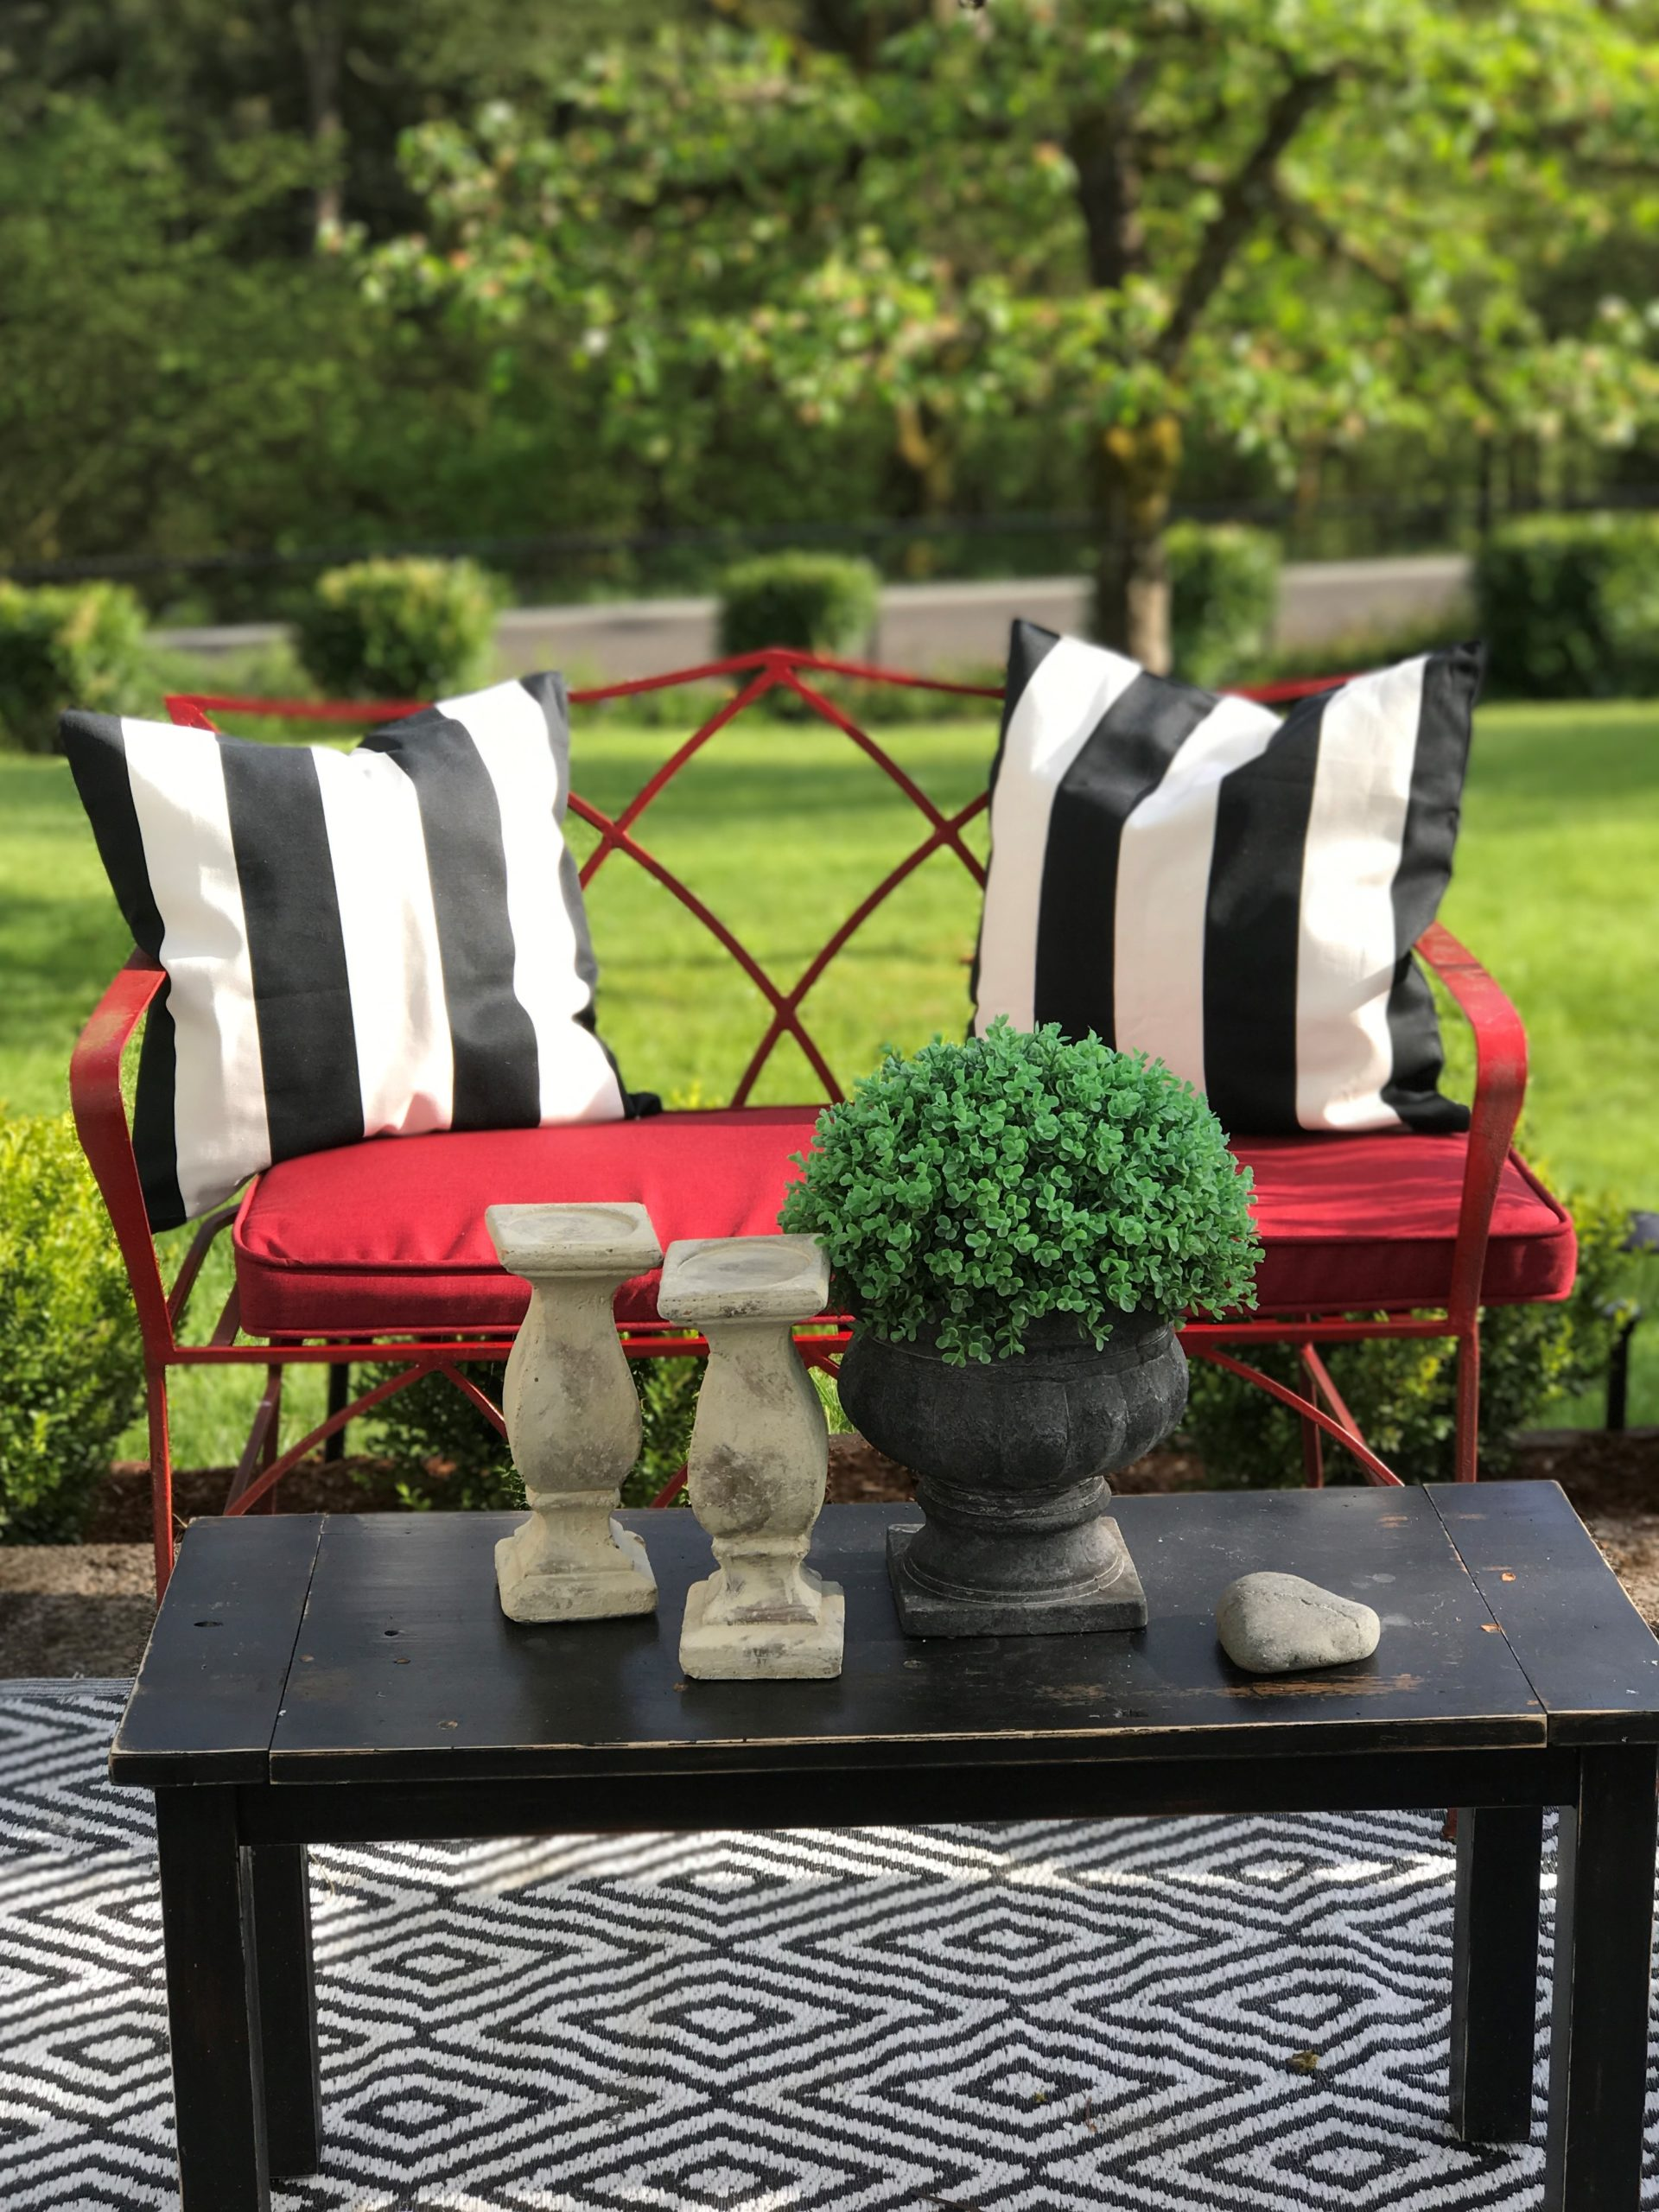 DIY Waterproofing Pillows for Outdoors